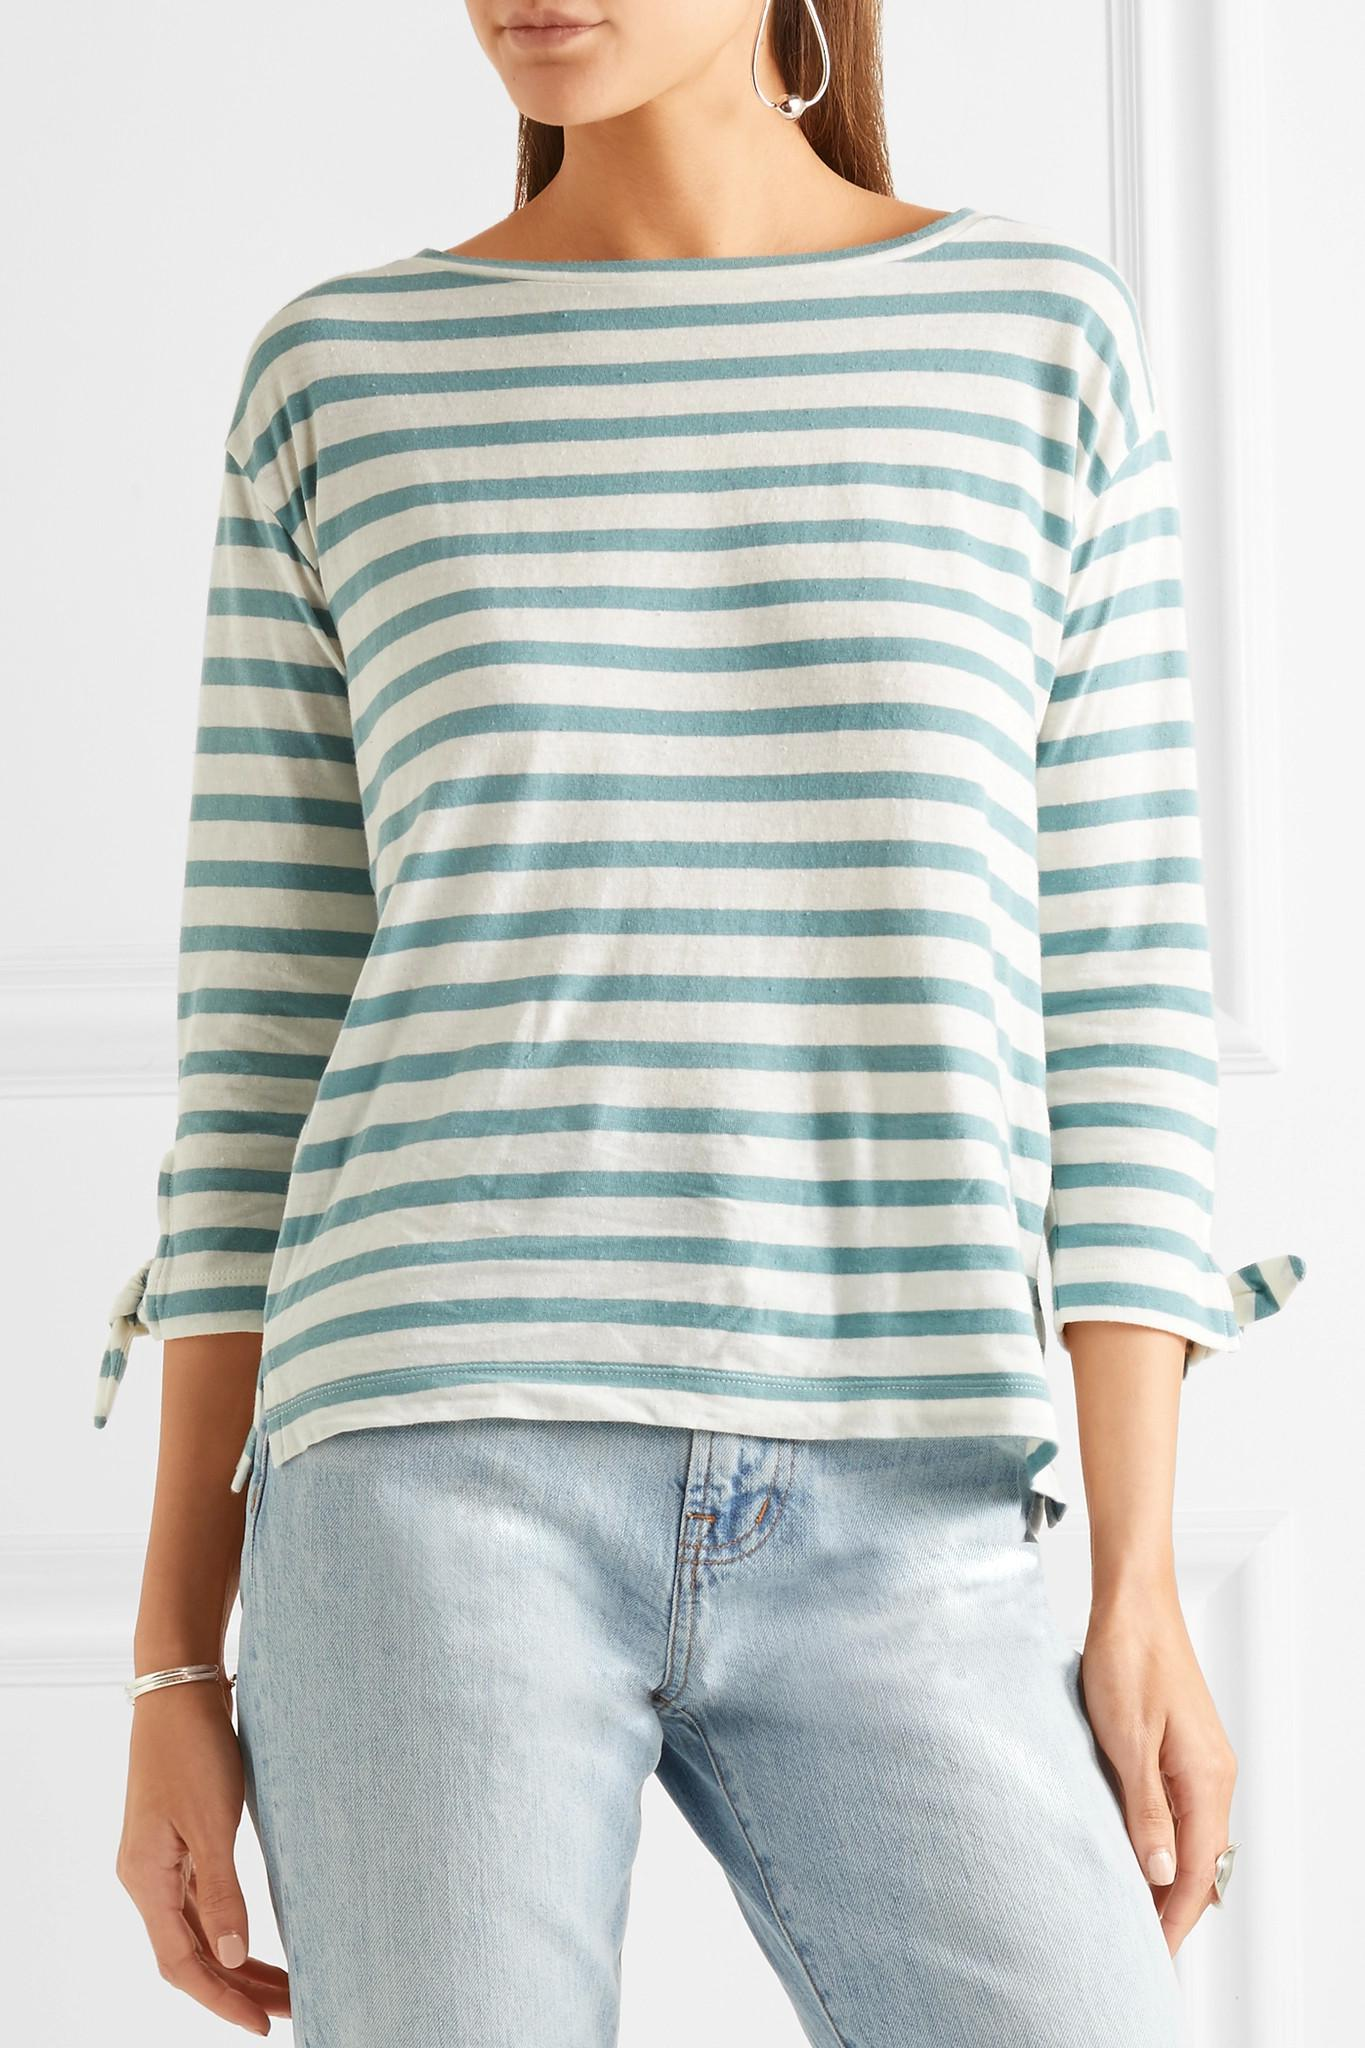 5f40b8577ee Lyst - Madewell Marisol Striped Slub Cotton And Linen-blend Top in Green